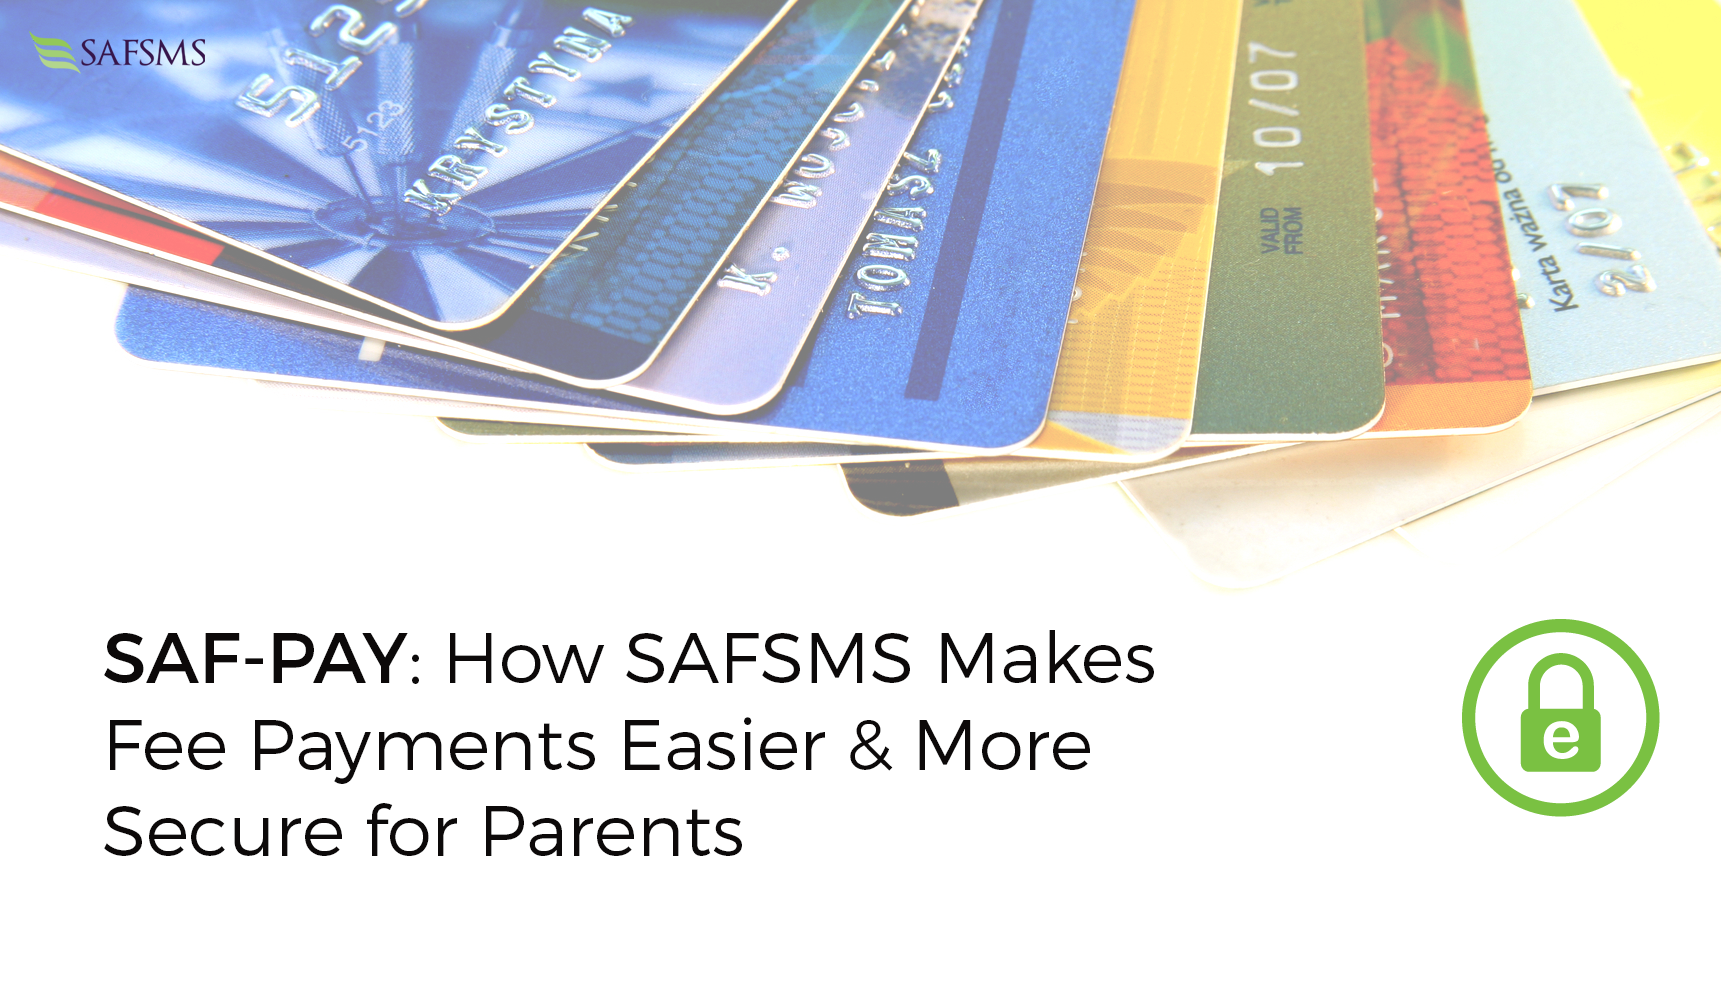 SAF-PAY: How SAFSMS Makes Fee Payments Easier & More Secure for Parents